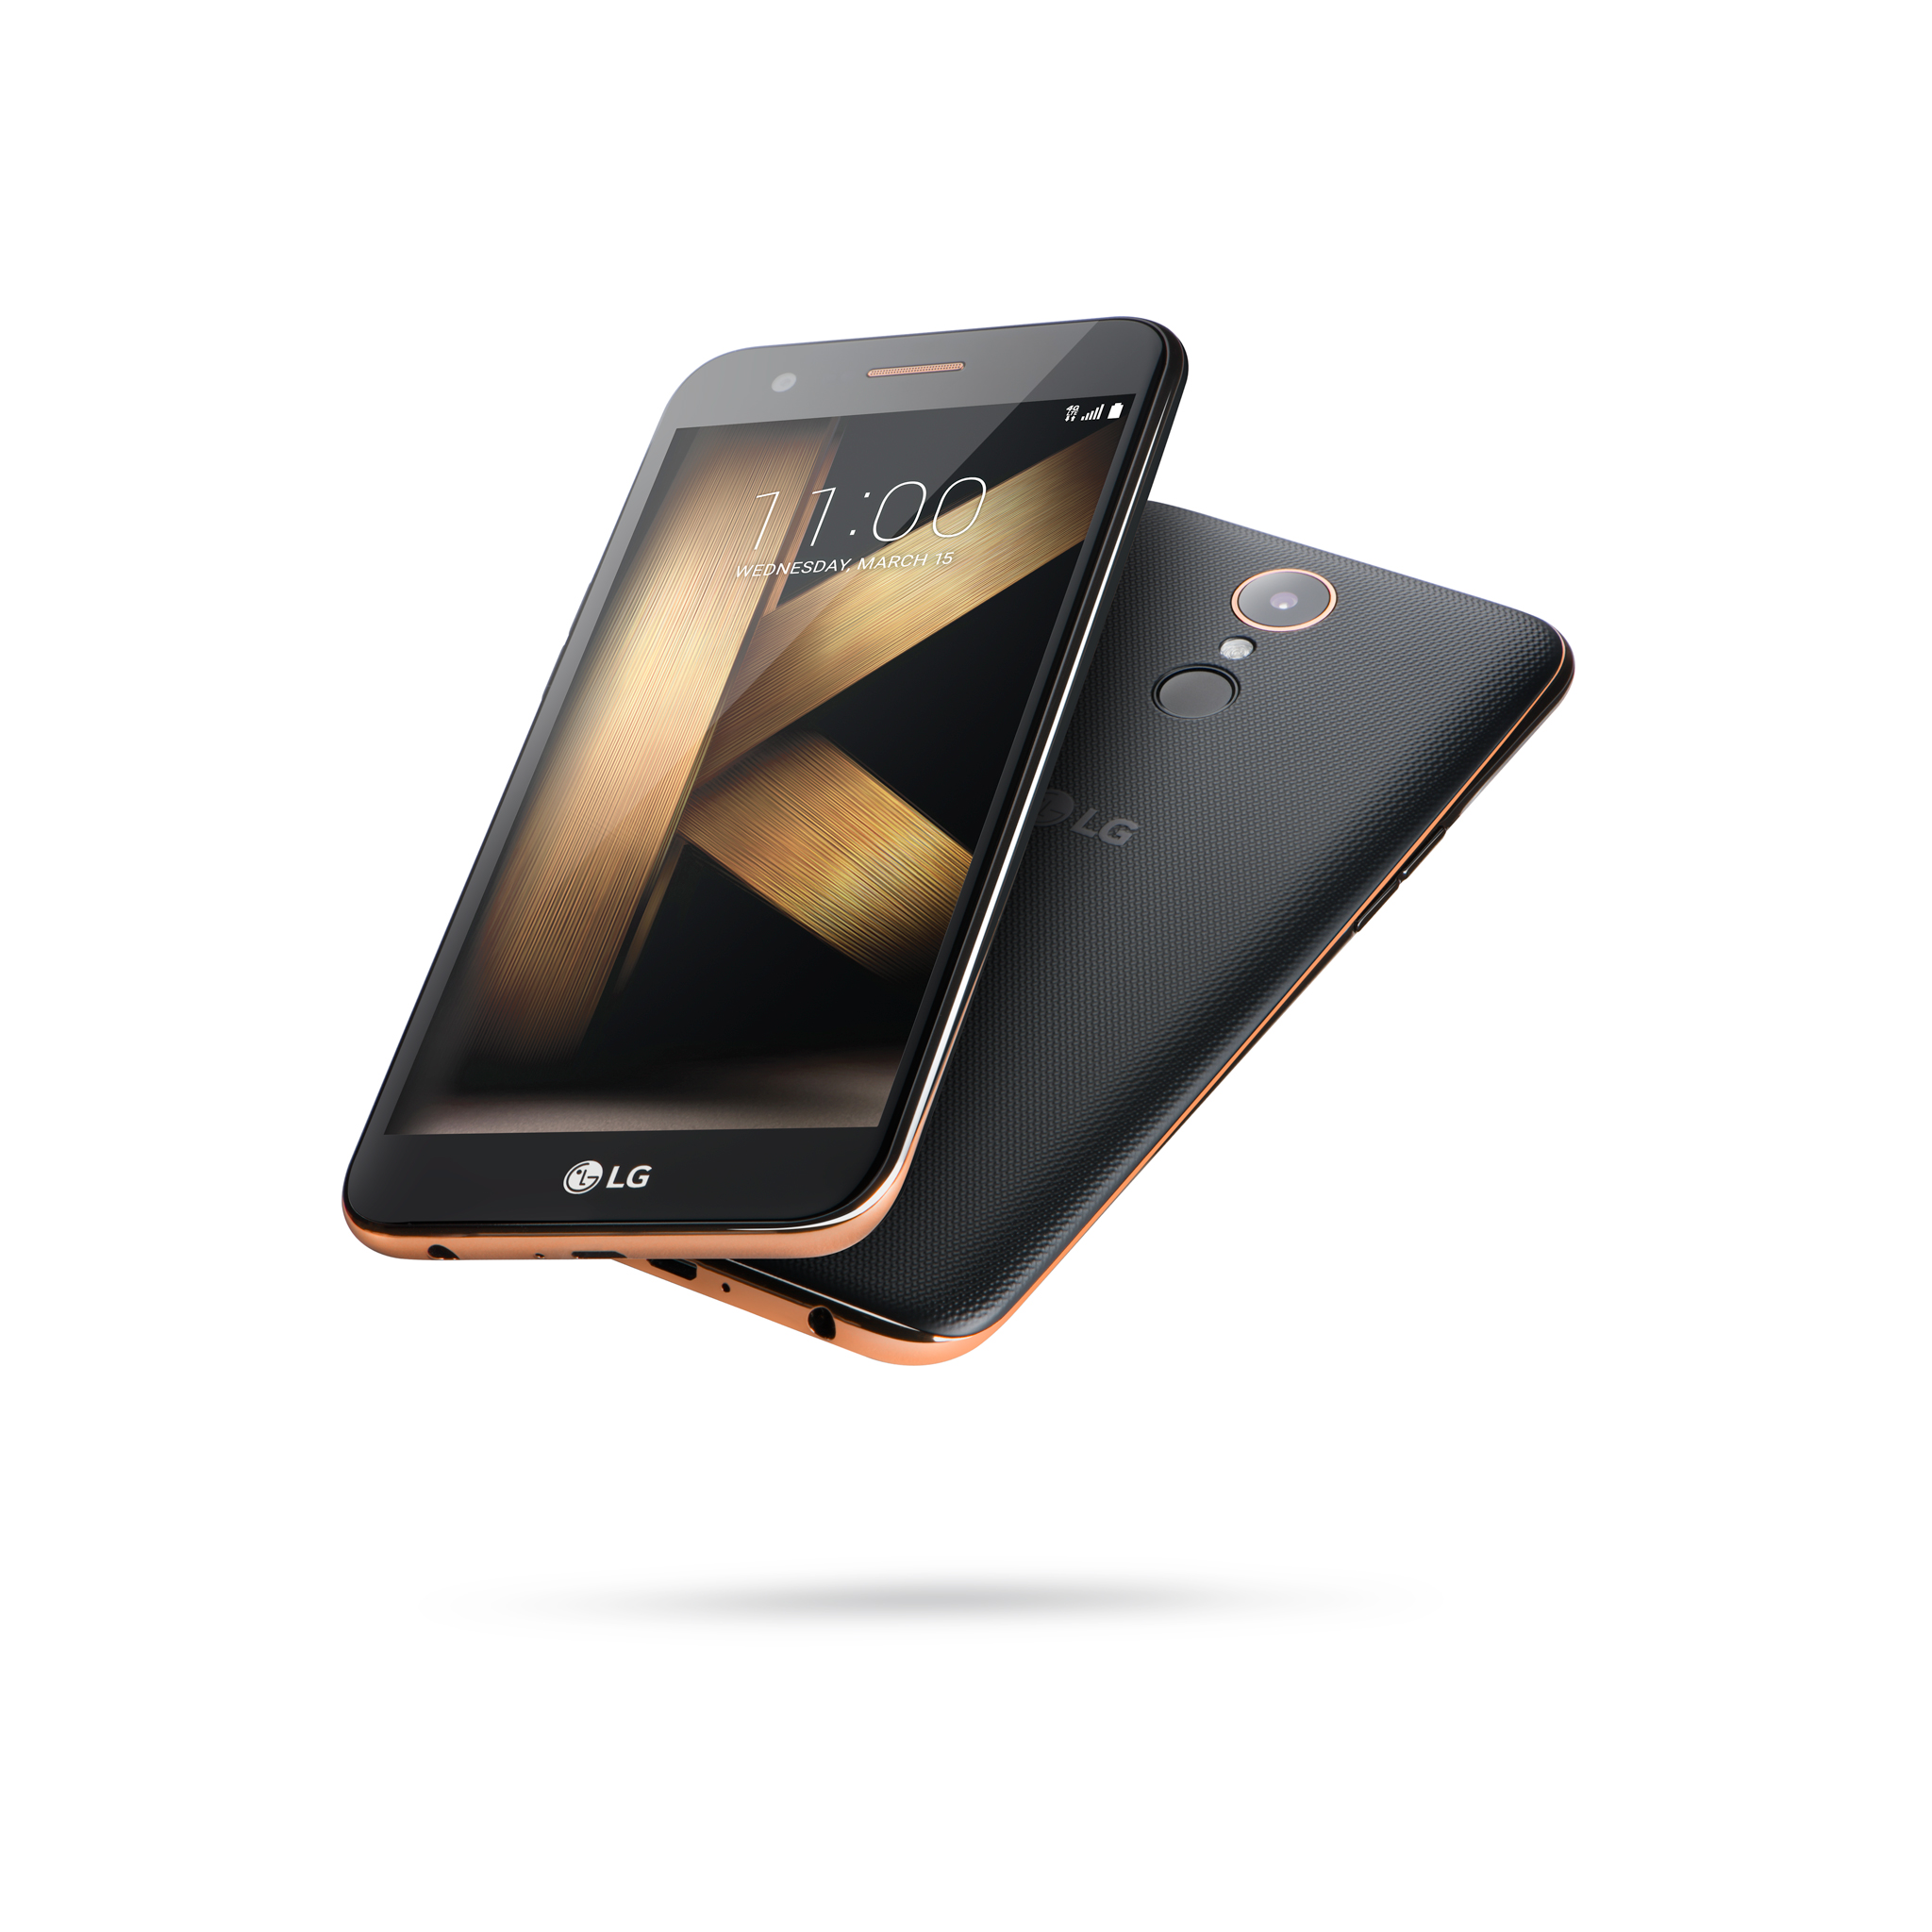 LG-copper-back-Edit.jpg